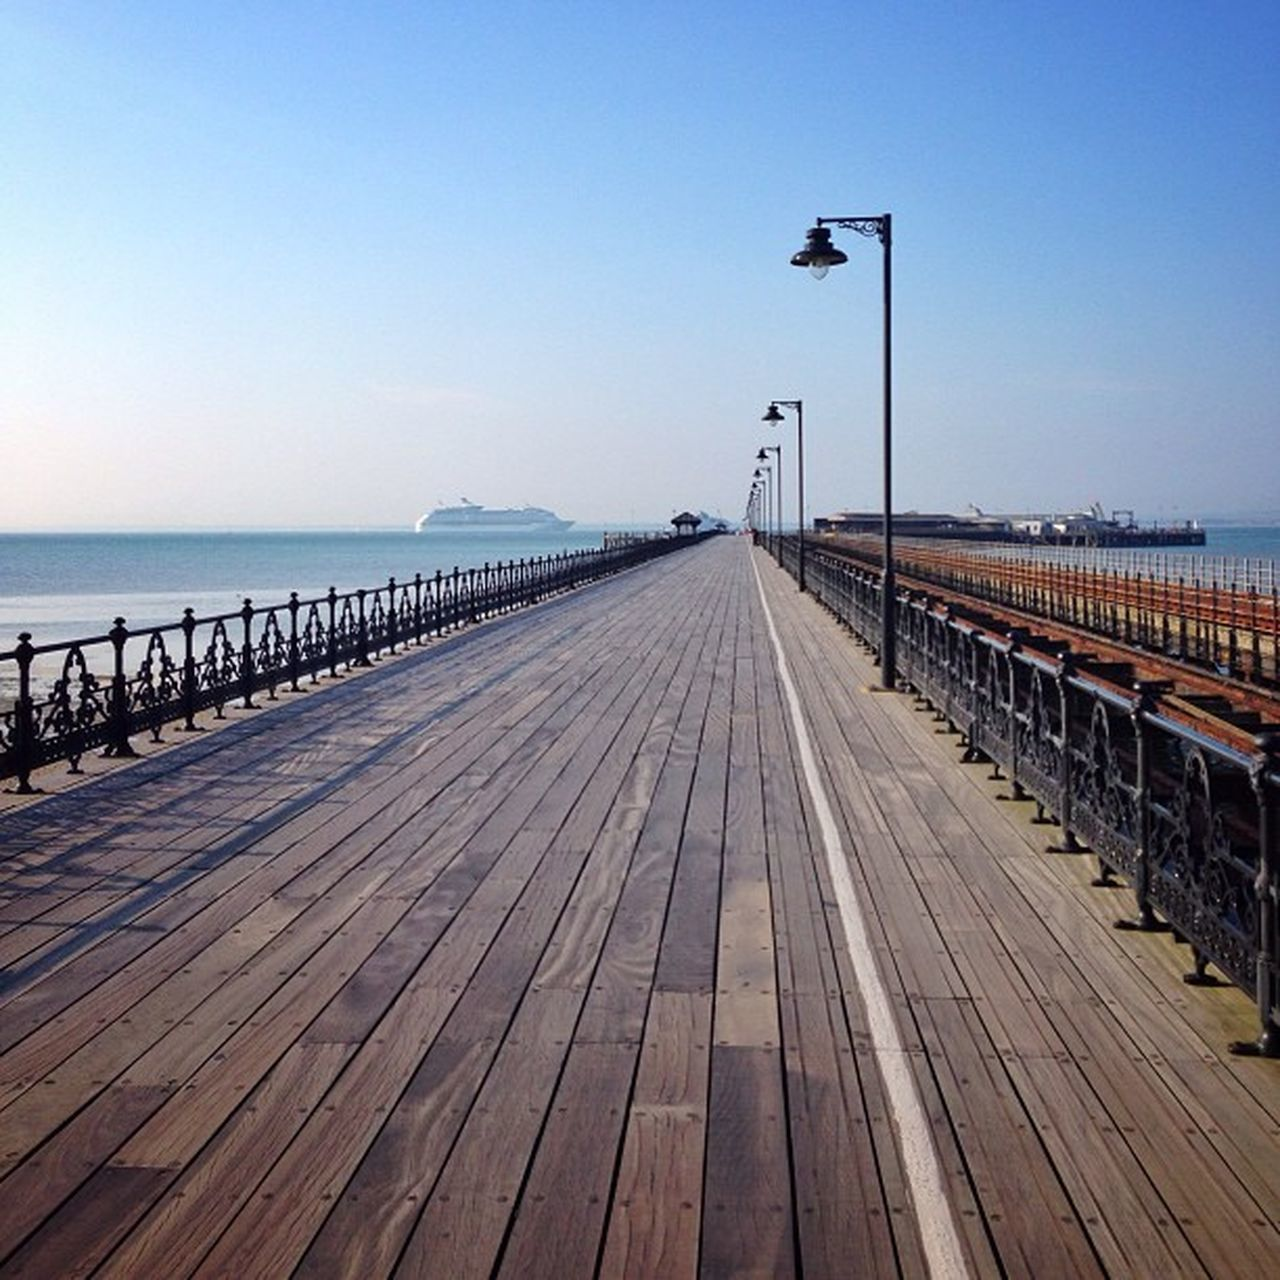 Another checkpoint, #Ryde pier. Over half a mile long #pier on #IsleOfWight ☀️???☀️ #royalisland #extremedepth #aauk #allshots_ #ic_water #ic_cities #ig_england #capture_today #yourturnbritain #englishchannel #gf_uk #gi_uk #gang_family Aauk Capture_today Loveyoursummer Pier Yourturnbritain Englishchannel Gang_family Isleofwight Extremedepth Ic_water Top_masters Royalisland Ryde Allshots_ Ic_cities Instascoop Gf_uk Gi_uk Ig_england